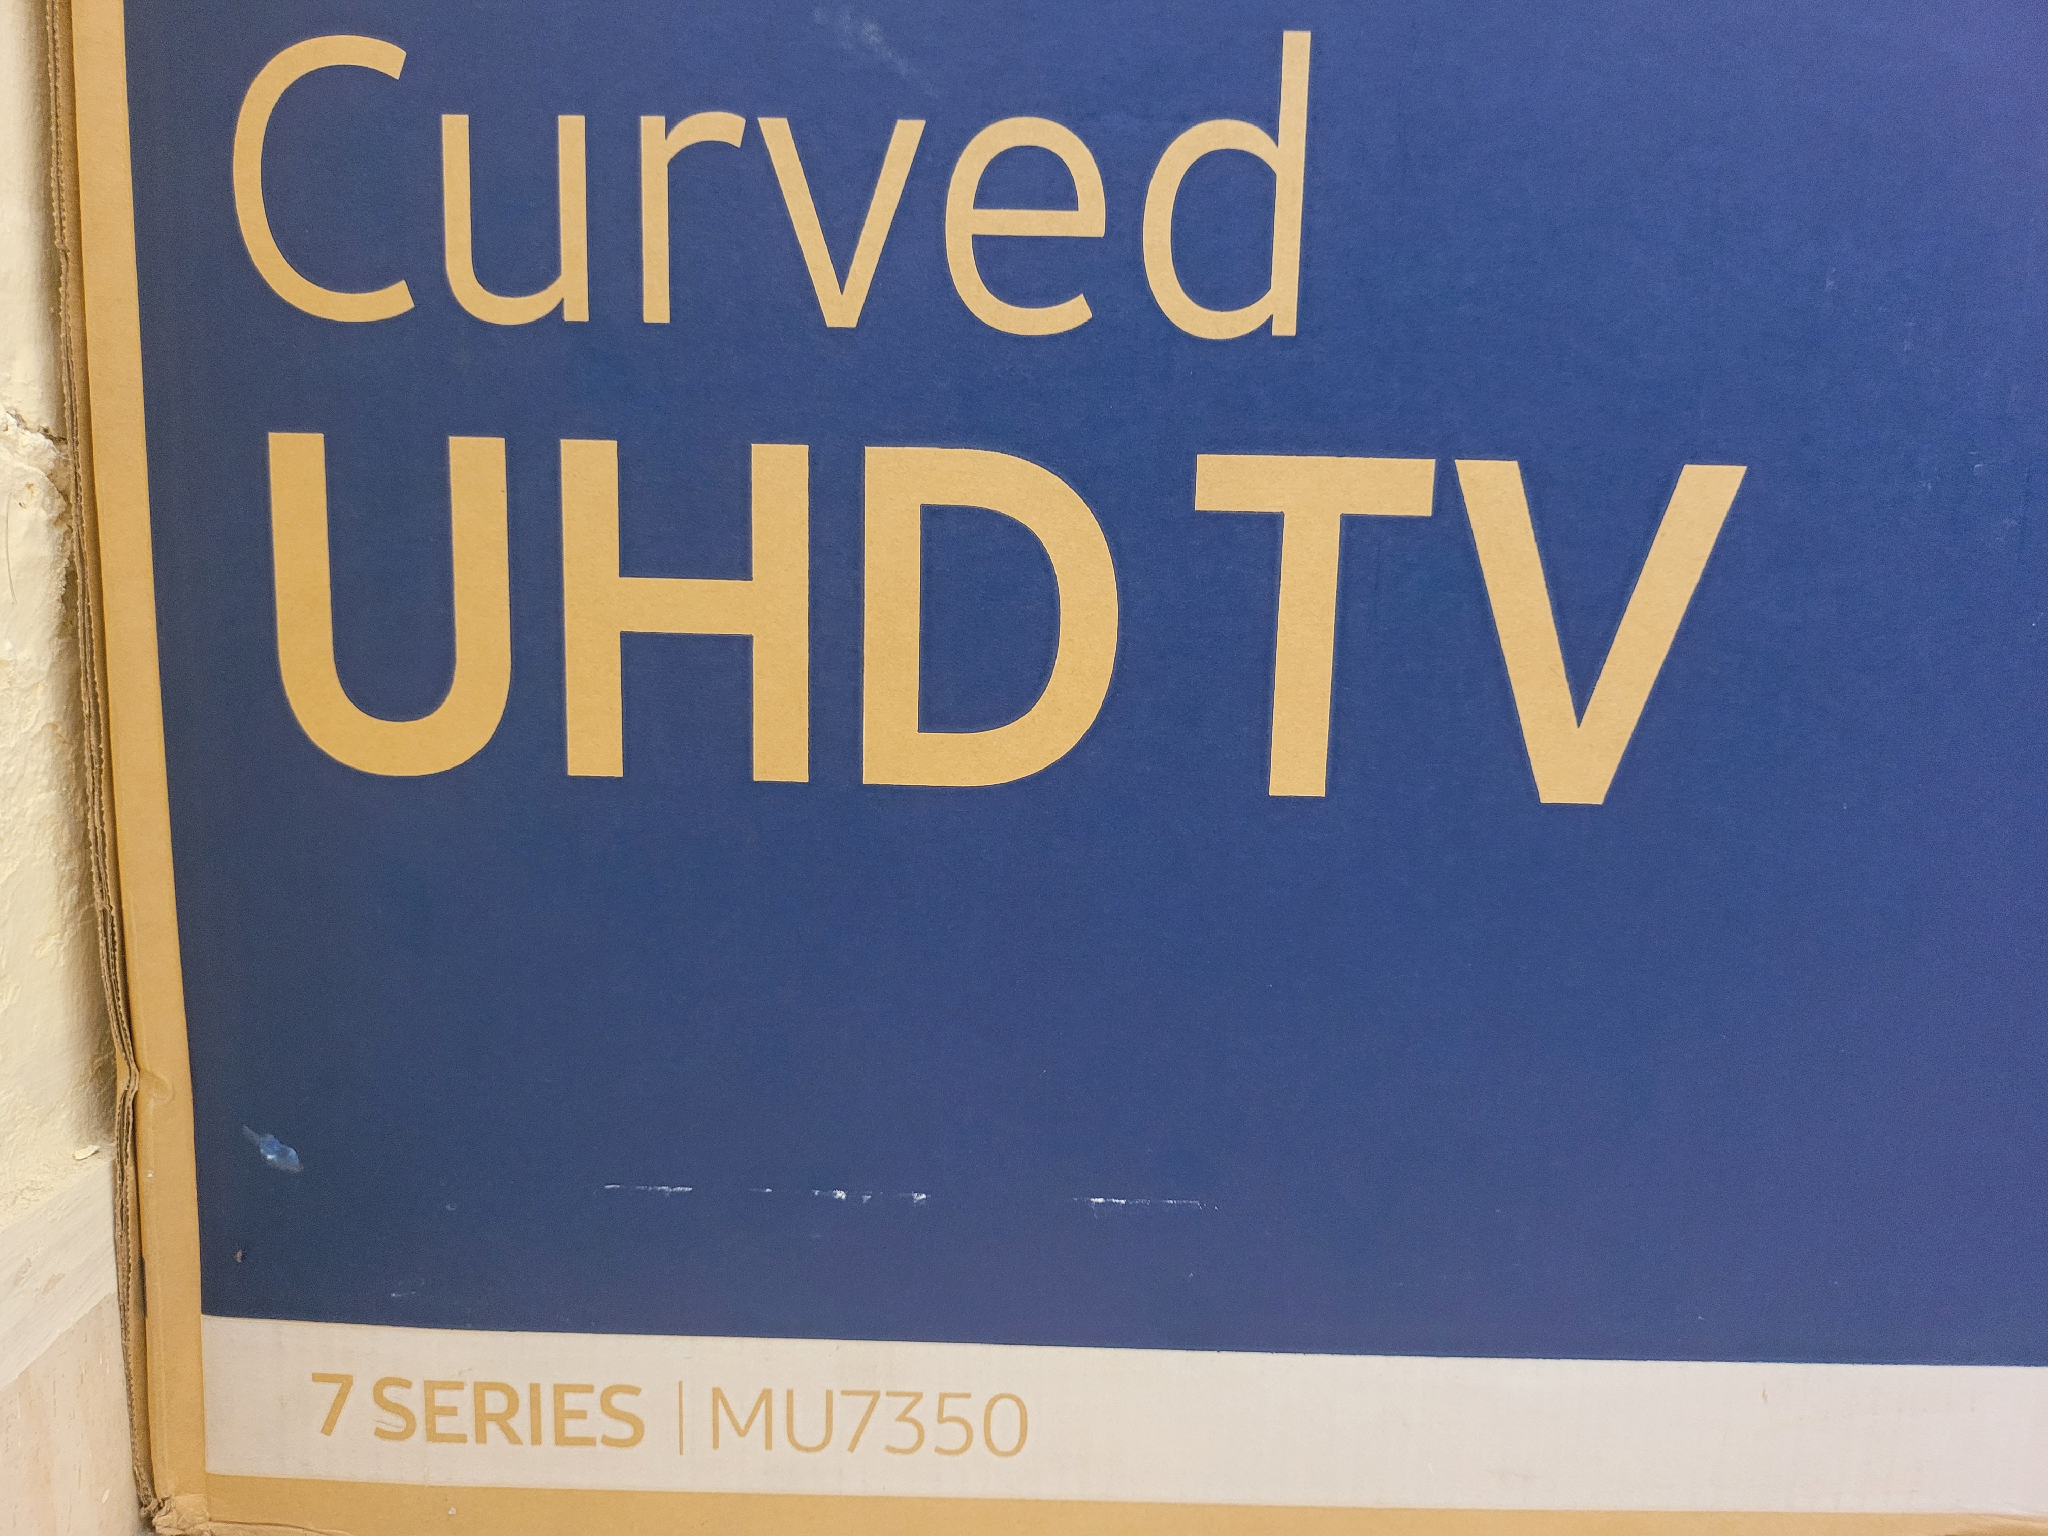 Samsung smart Curve 55 inches 4k